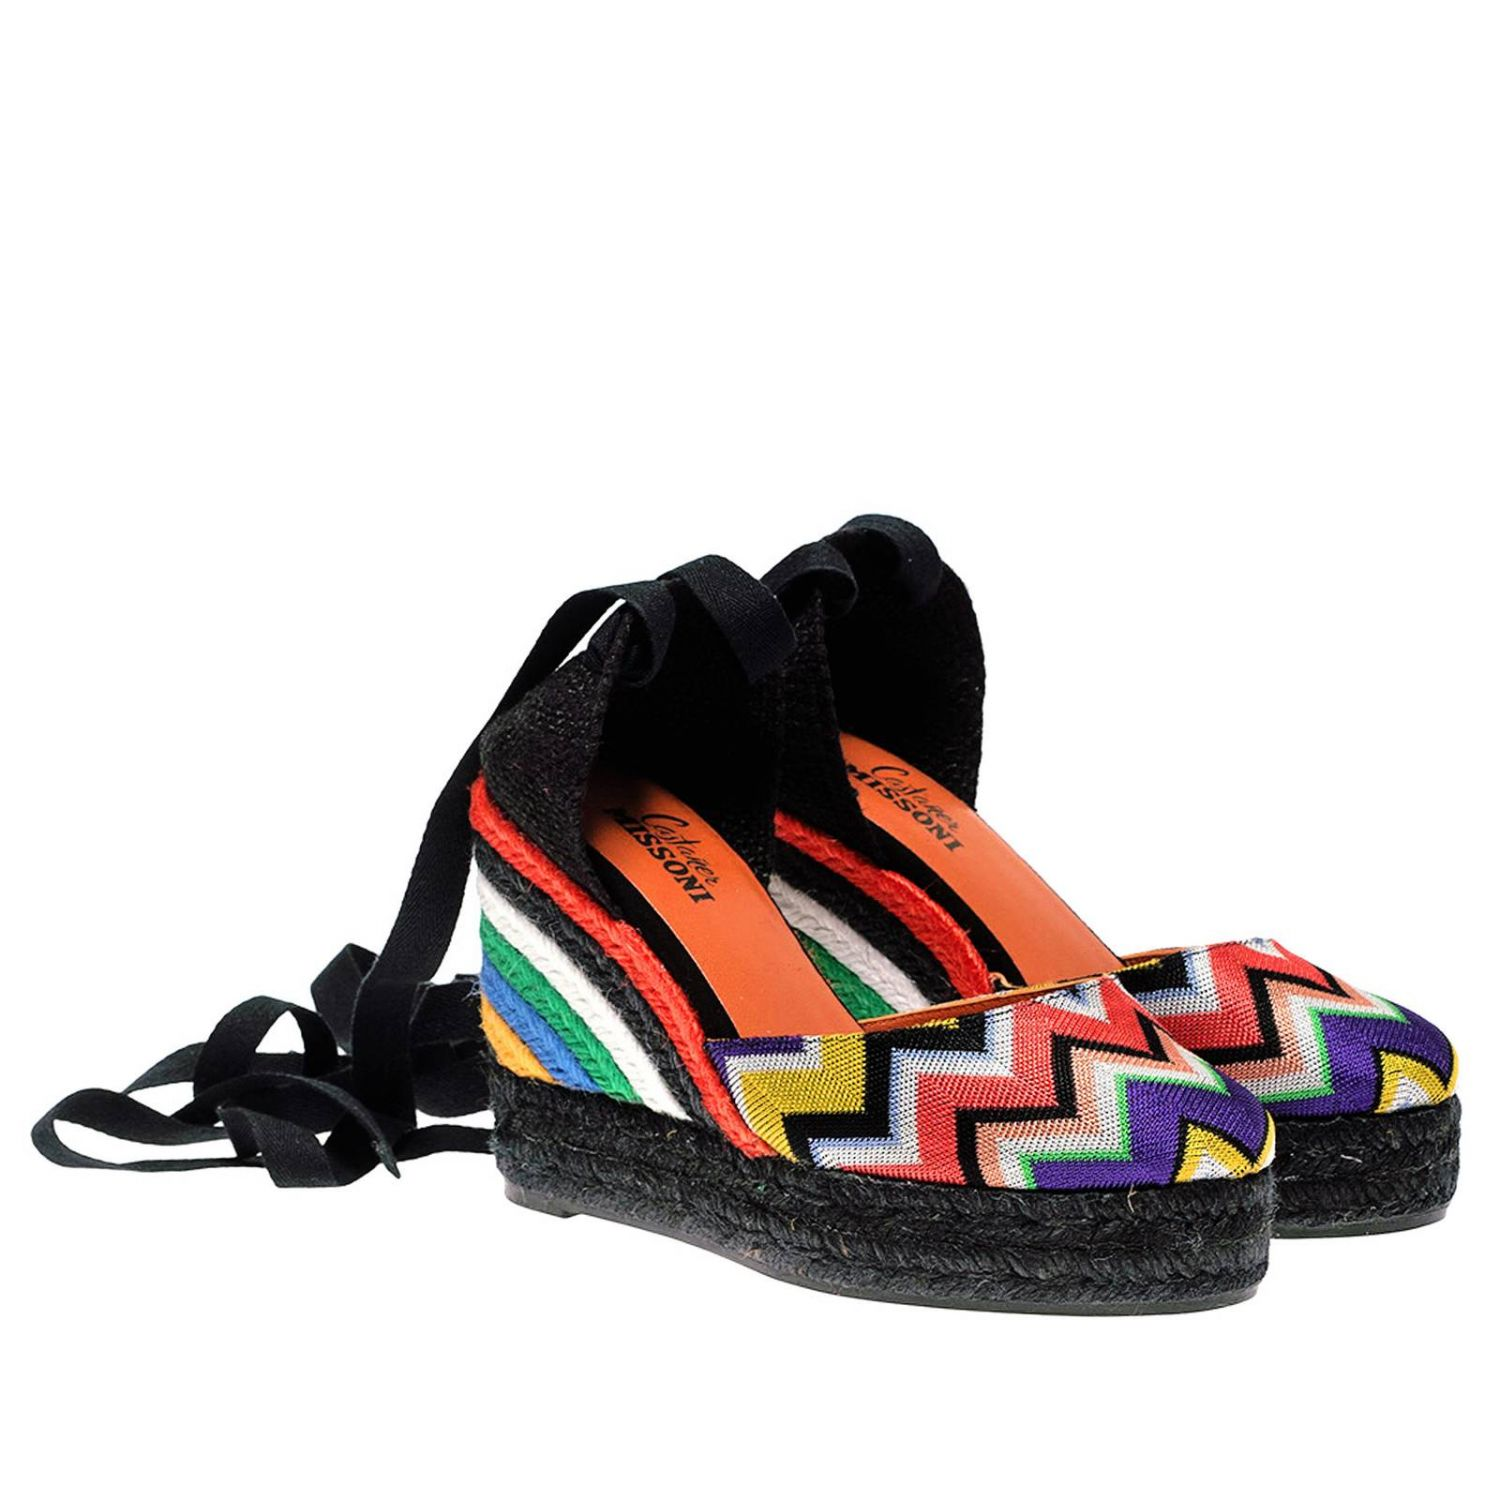 Shoes women Castaner multicolor 2